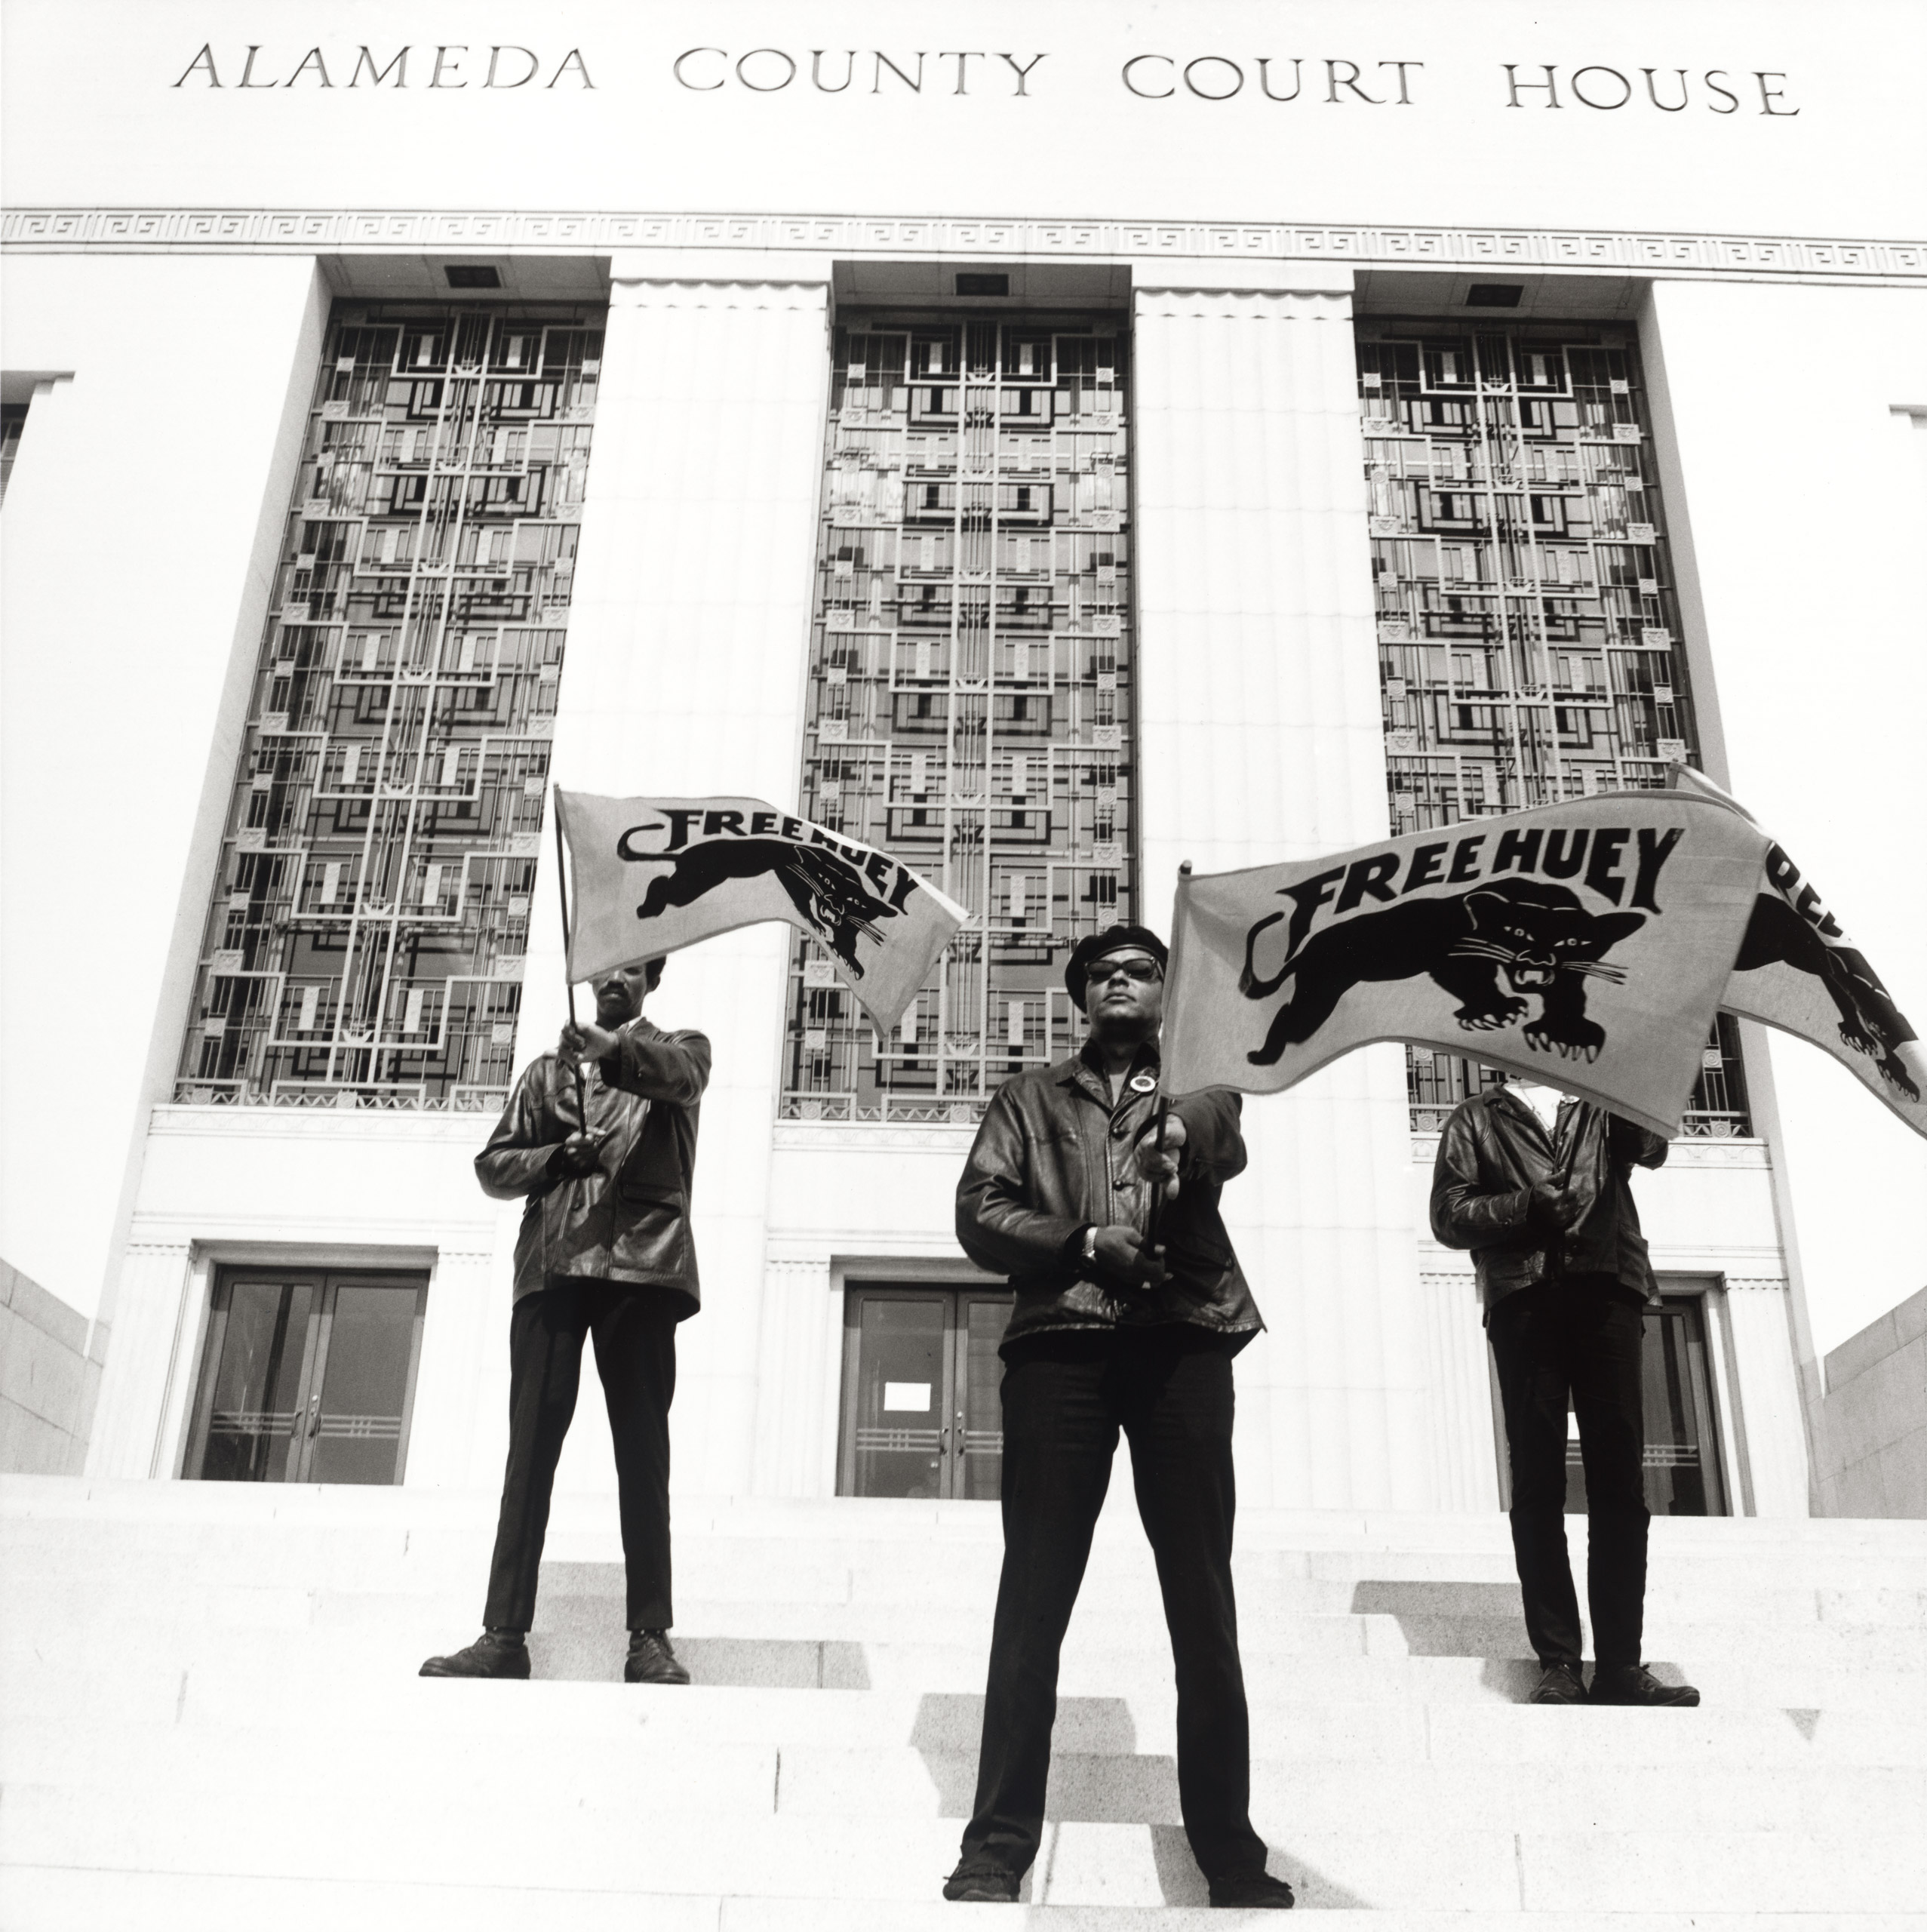 Black Panther demonstration, Alameda Co. Court House,                               Oakland, California, during Huey Newton's trial, #71, July 30, 1968.